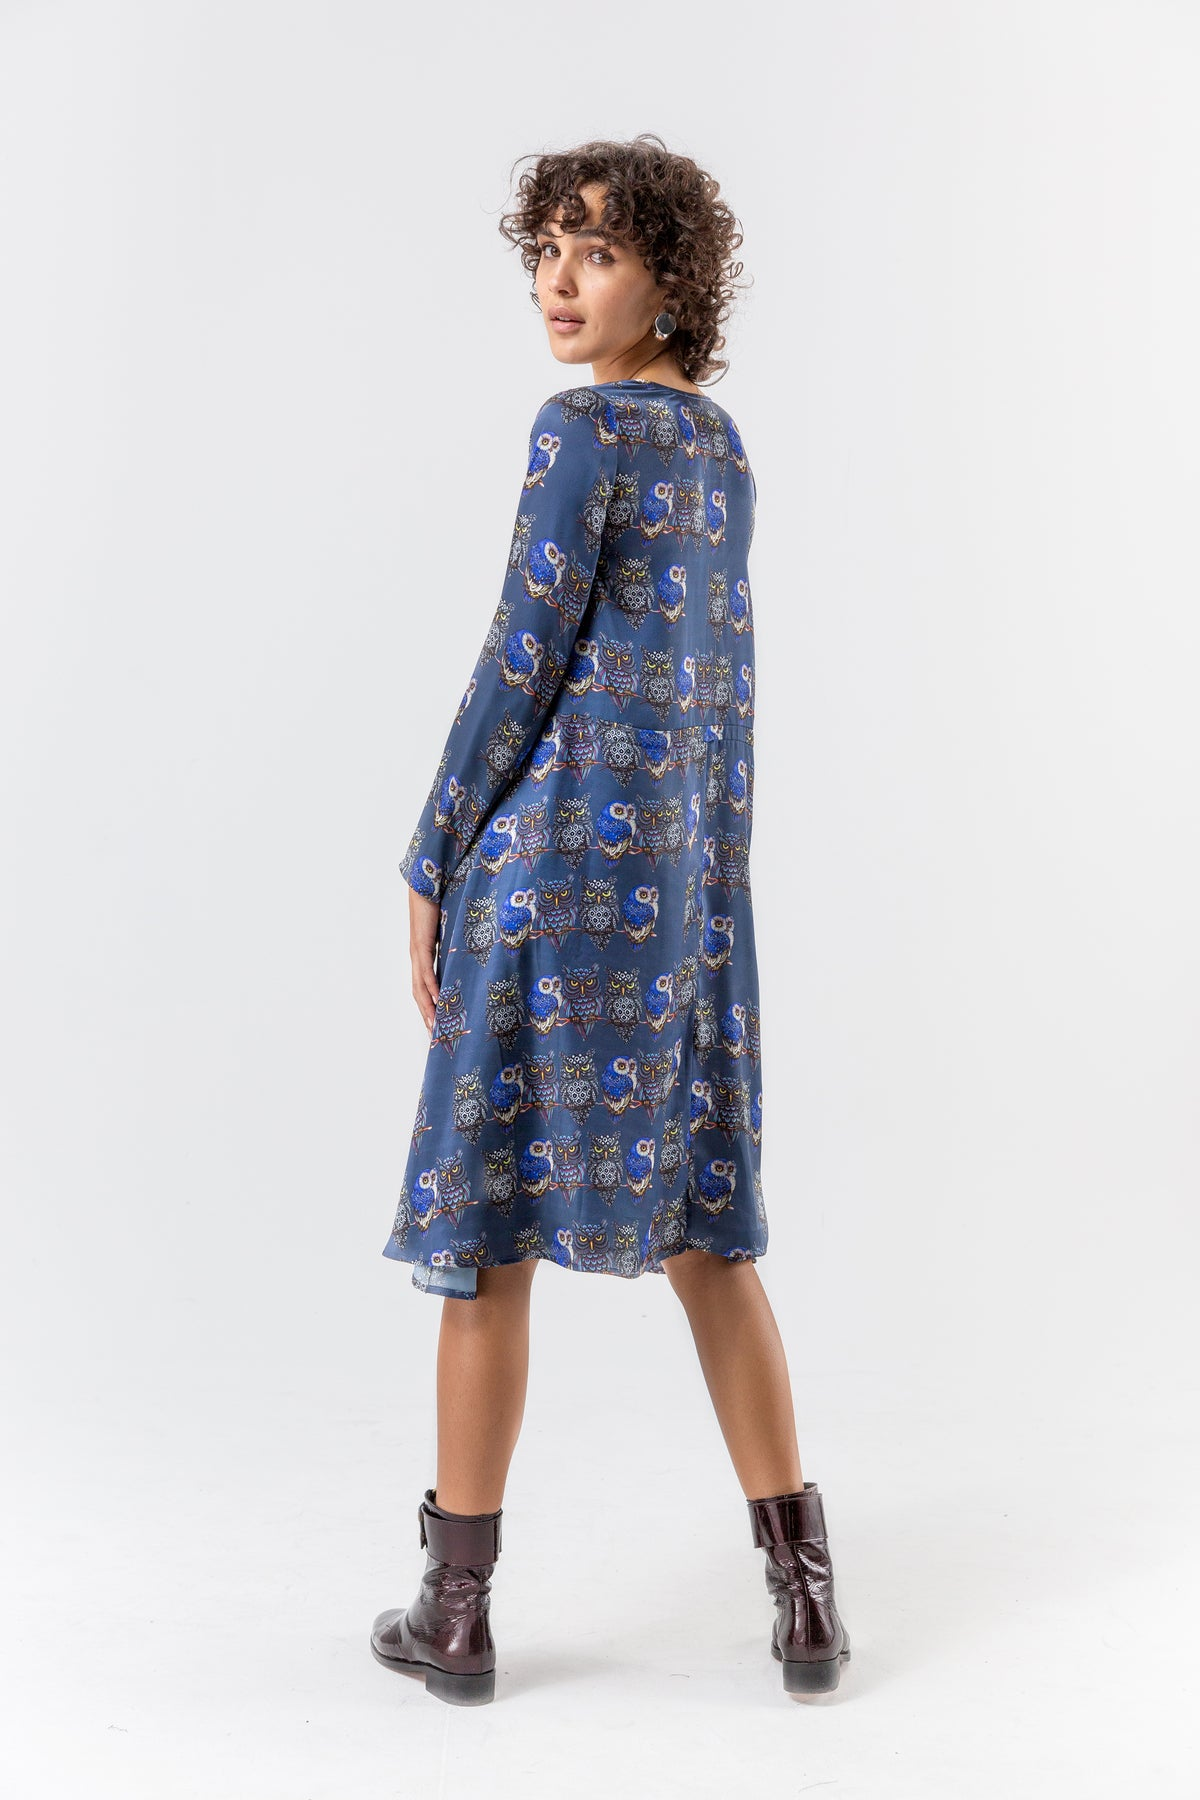 Java dress in owl print